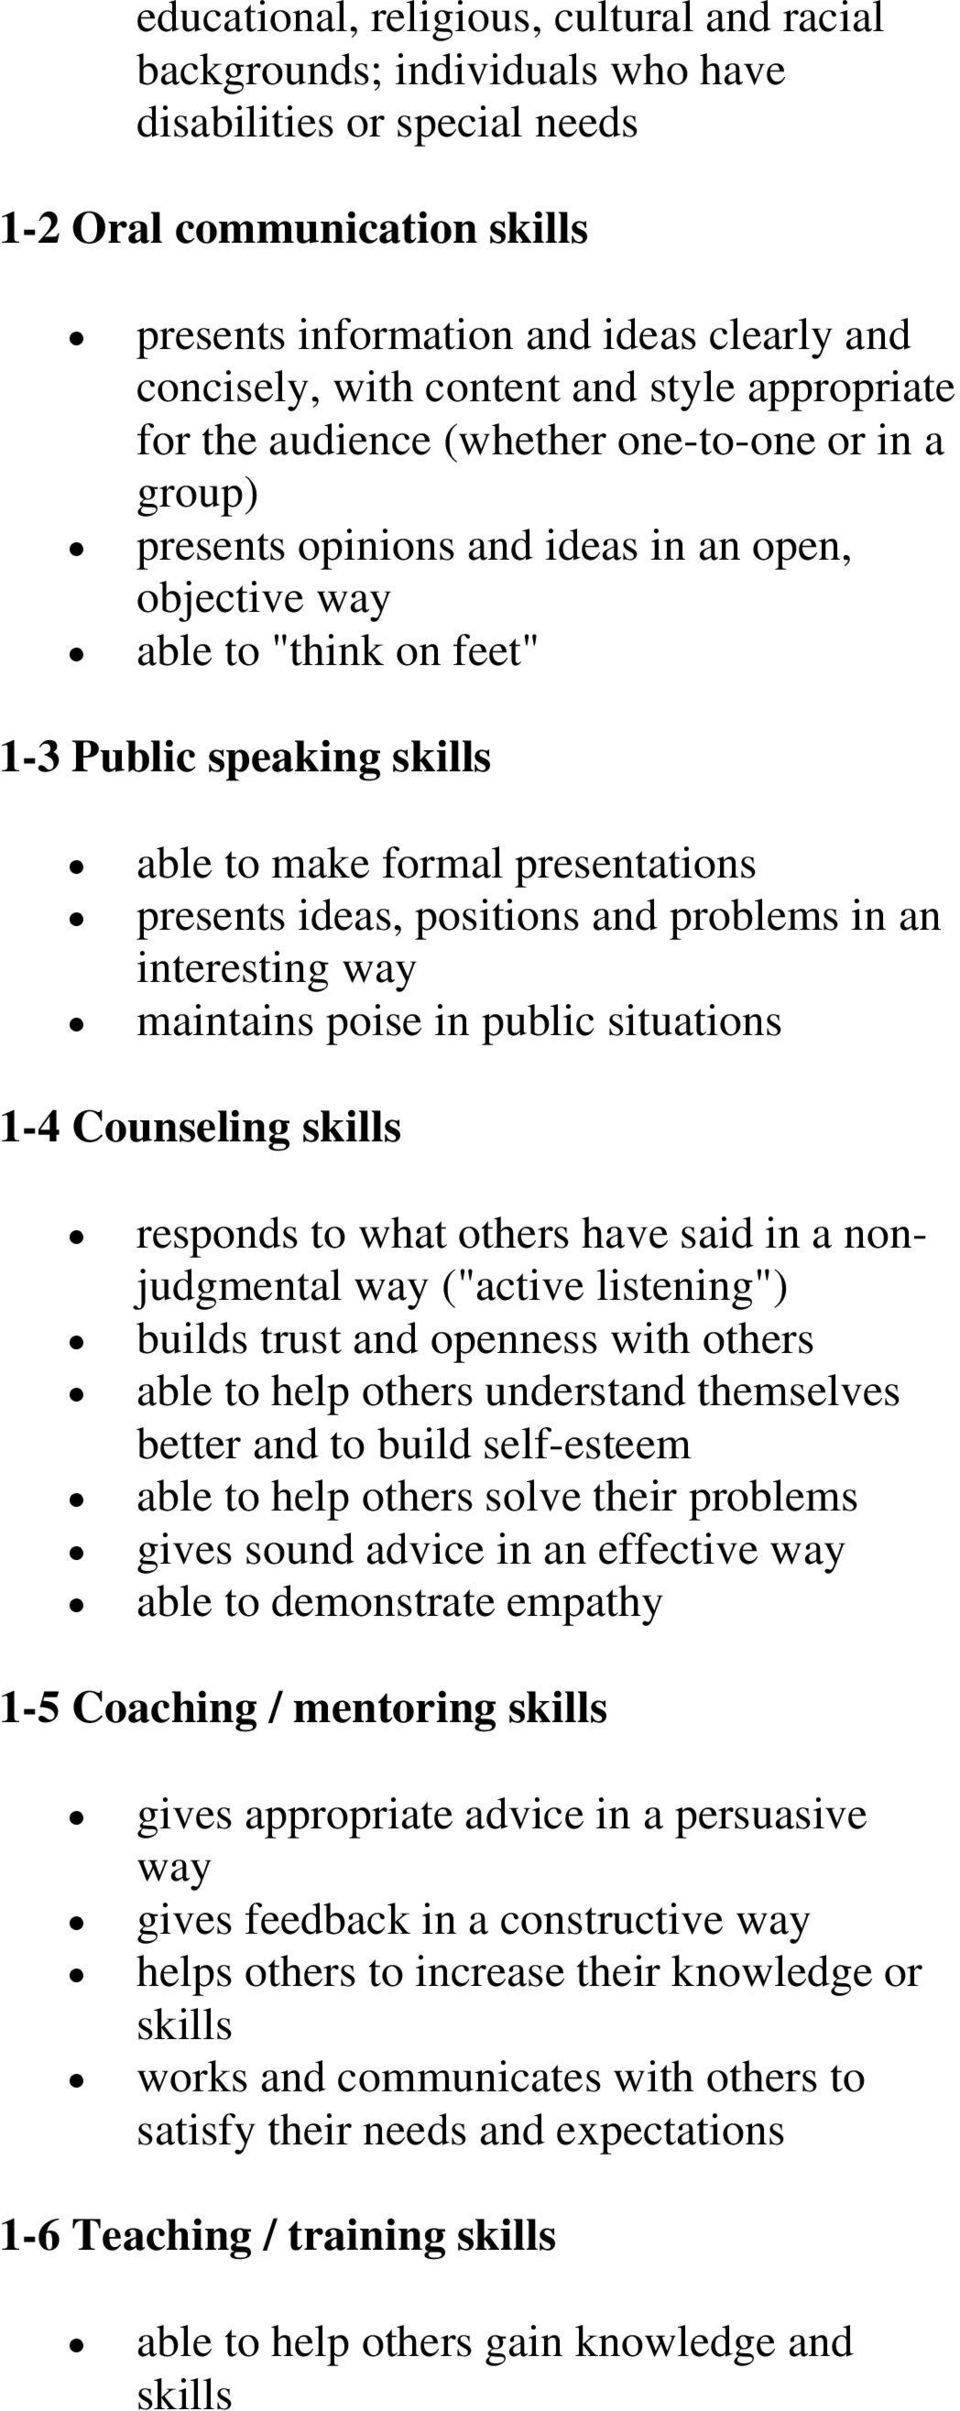 formal presentations presents ideas, positions and problems in an interesting way maintains poise in public situations 1-4 Counseling skills responds to what others have said in a nonjudgmental way